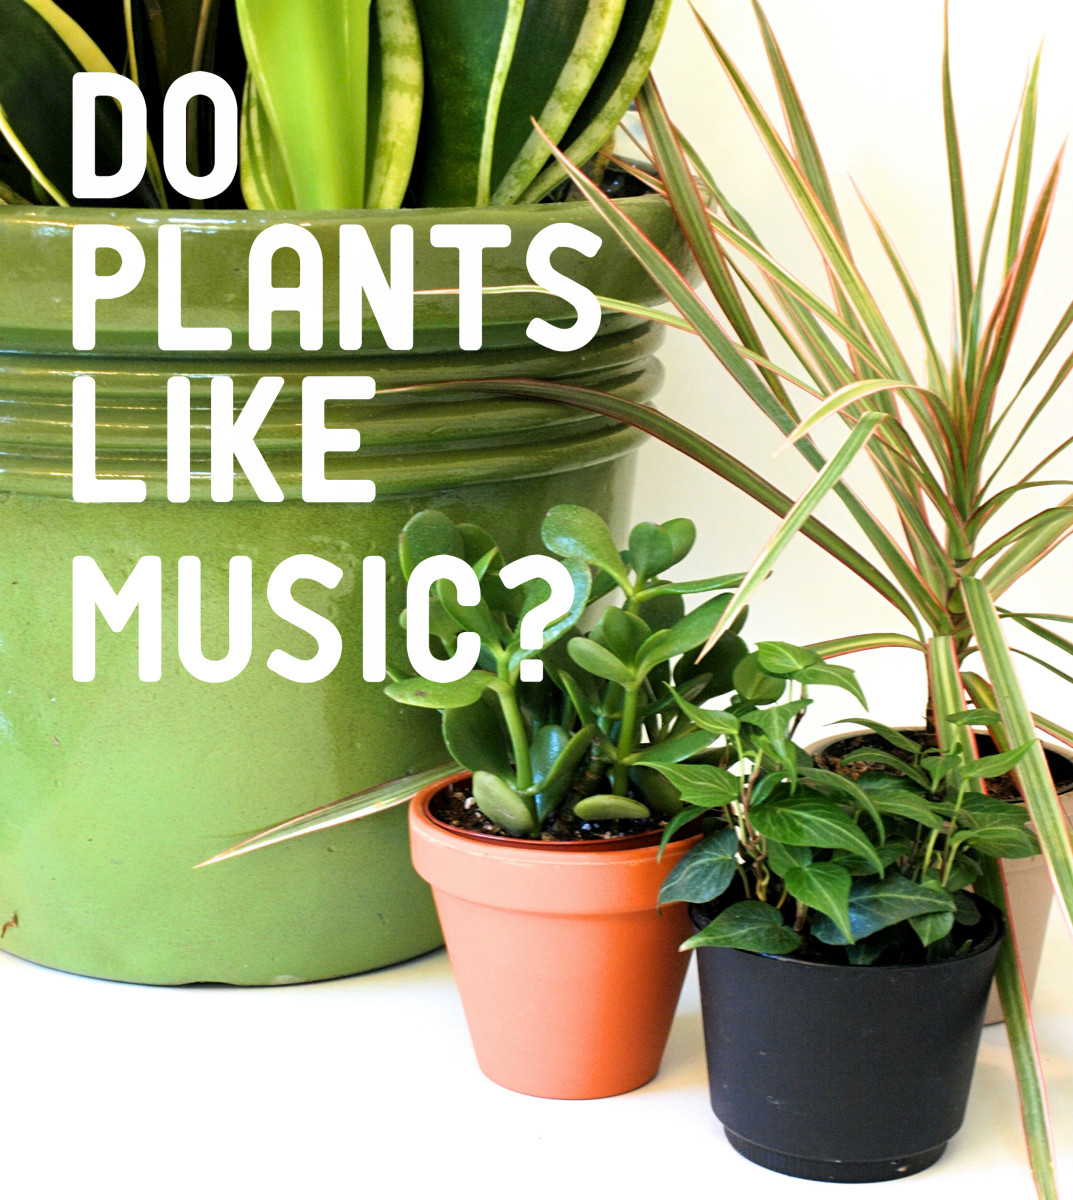 The Effect of Music on Plant Growth